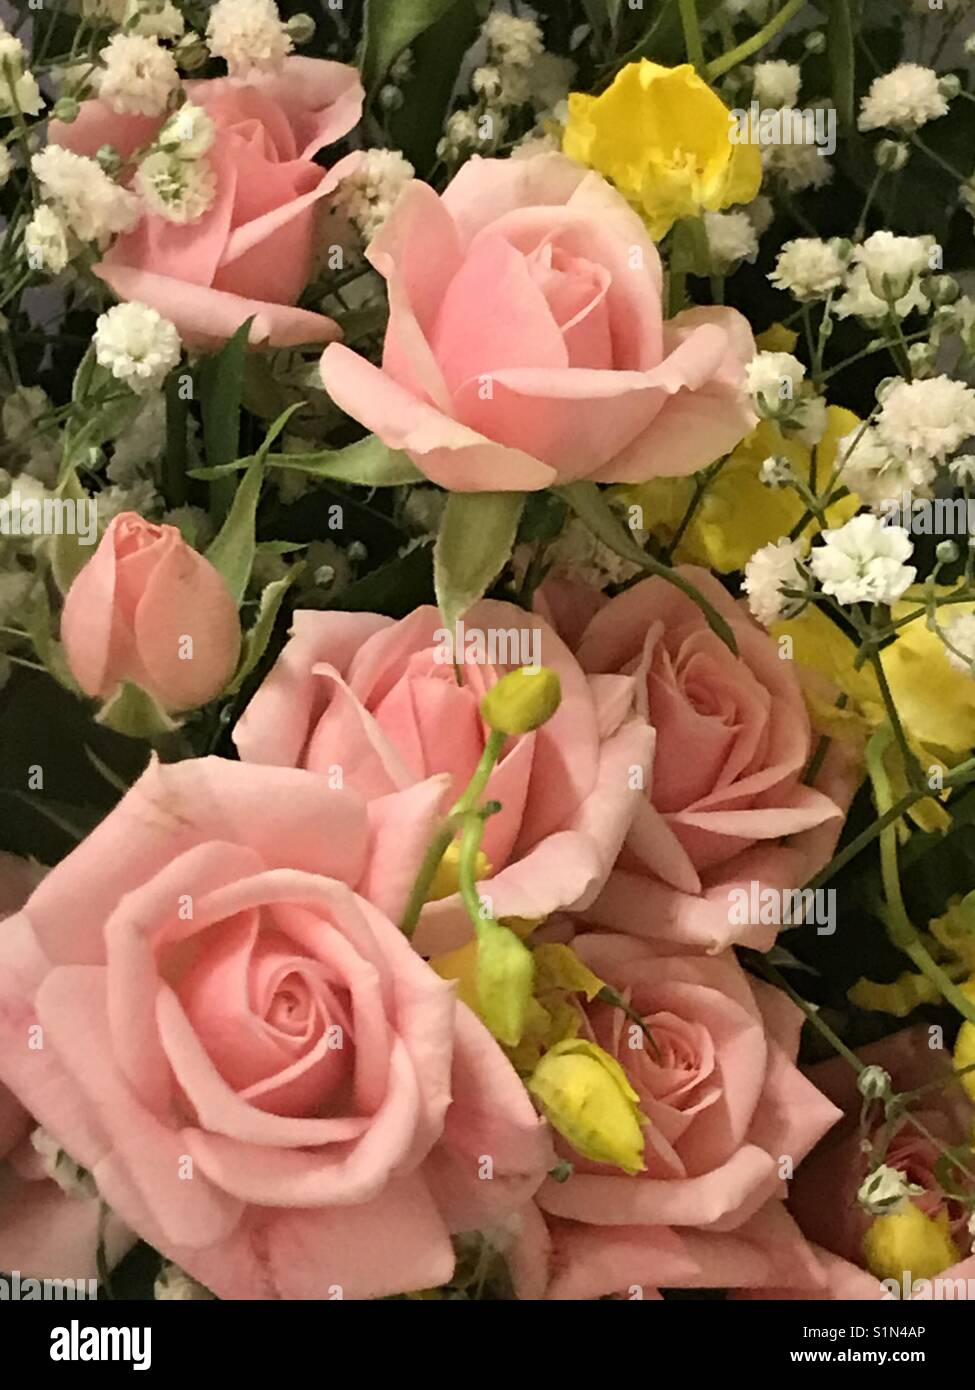 A bunch of roses - Stock Image